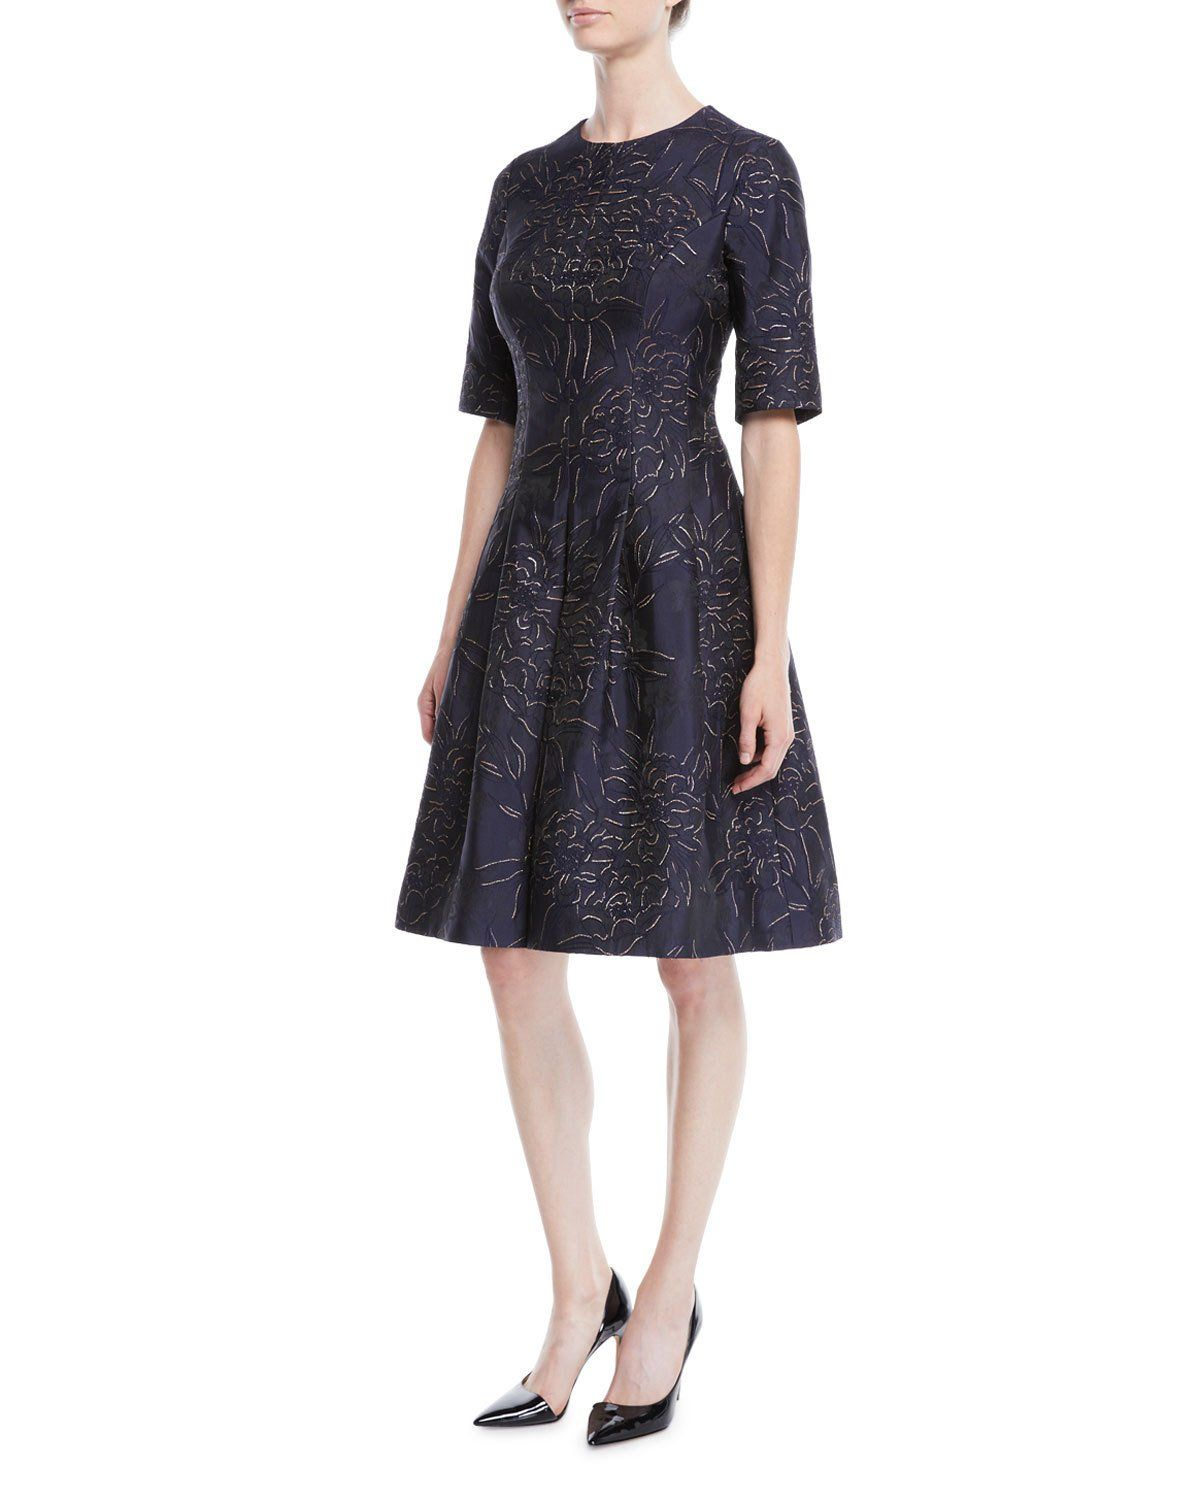 86363cd15d Rickie Freeman for Teri Jon Elbow-Sleeve Floral-Jacquard Fit-and-Flare  Cocktail Dress